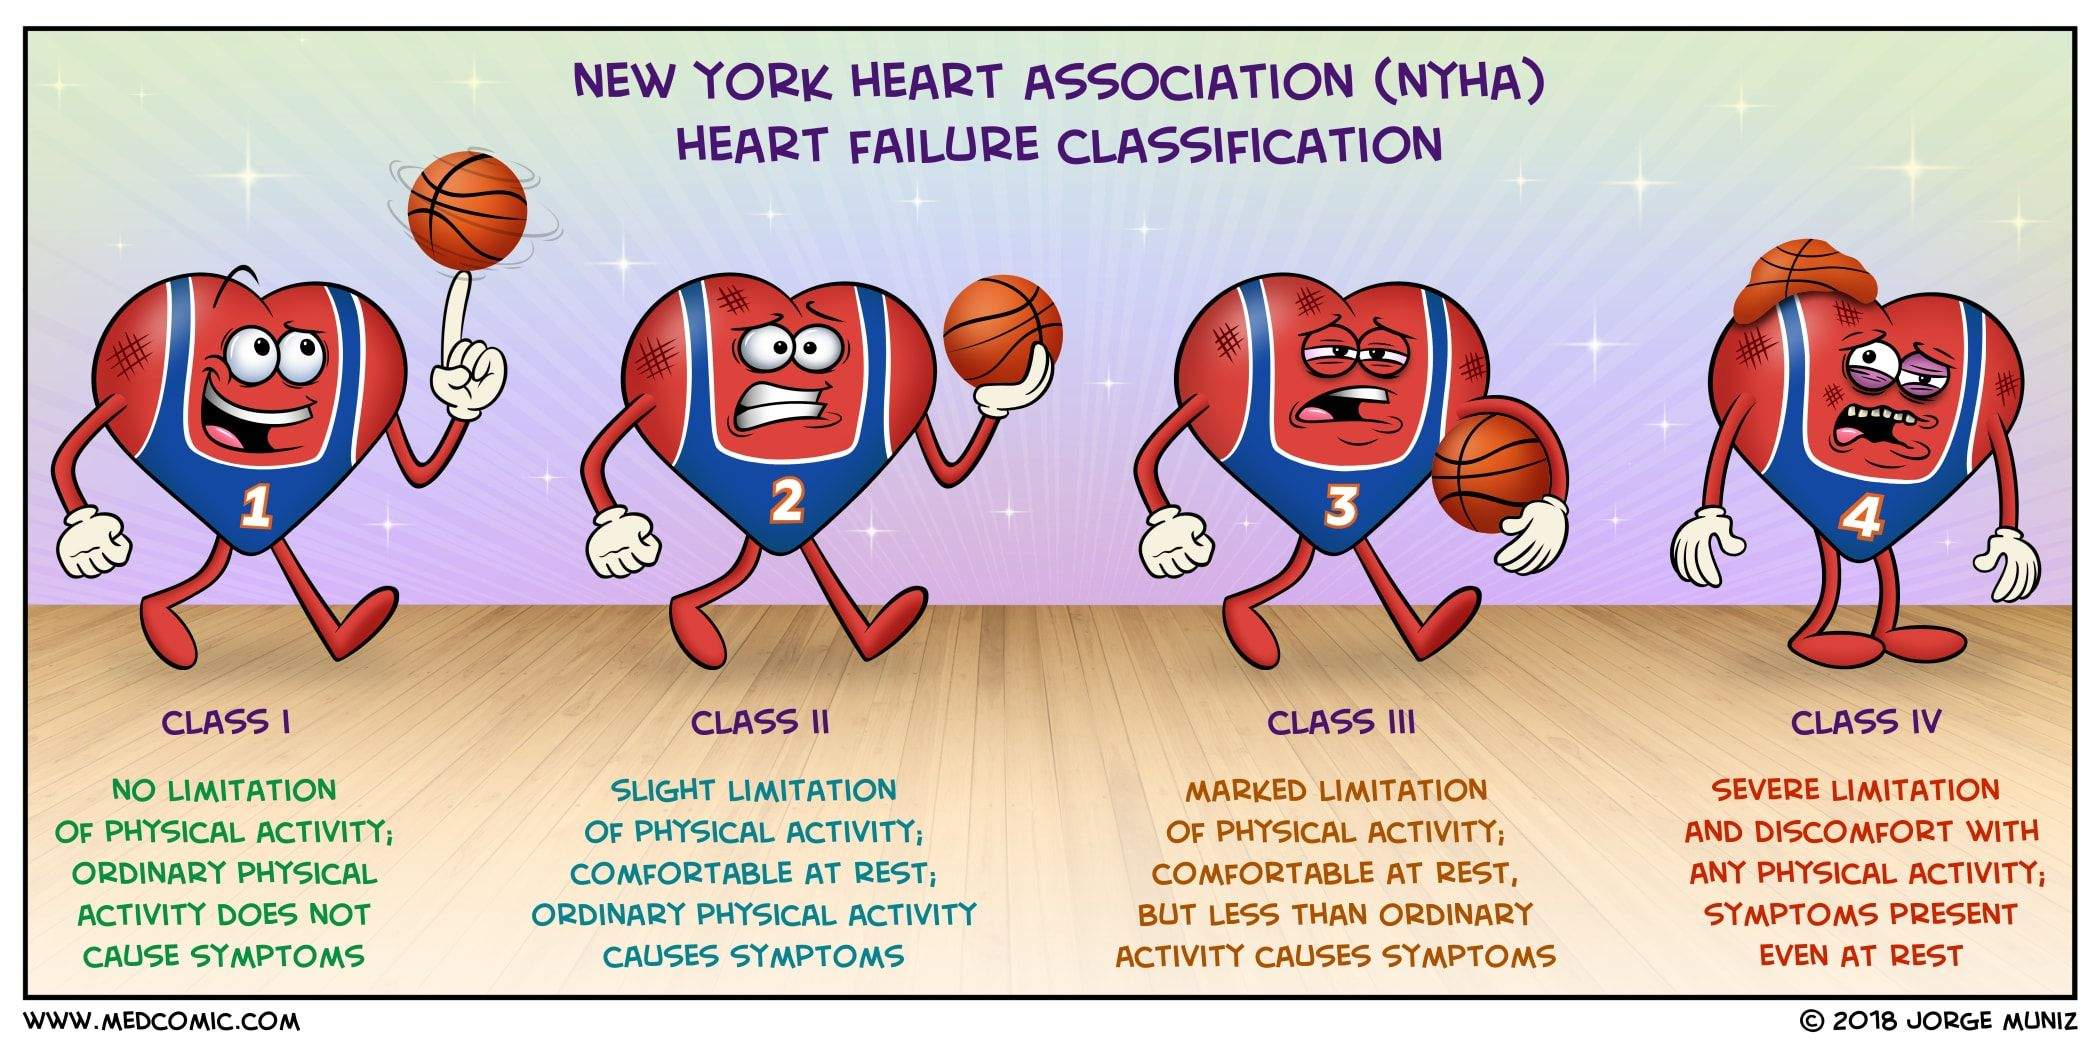 Functional classification systems the new york heart